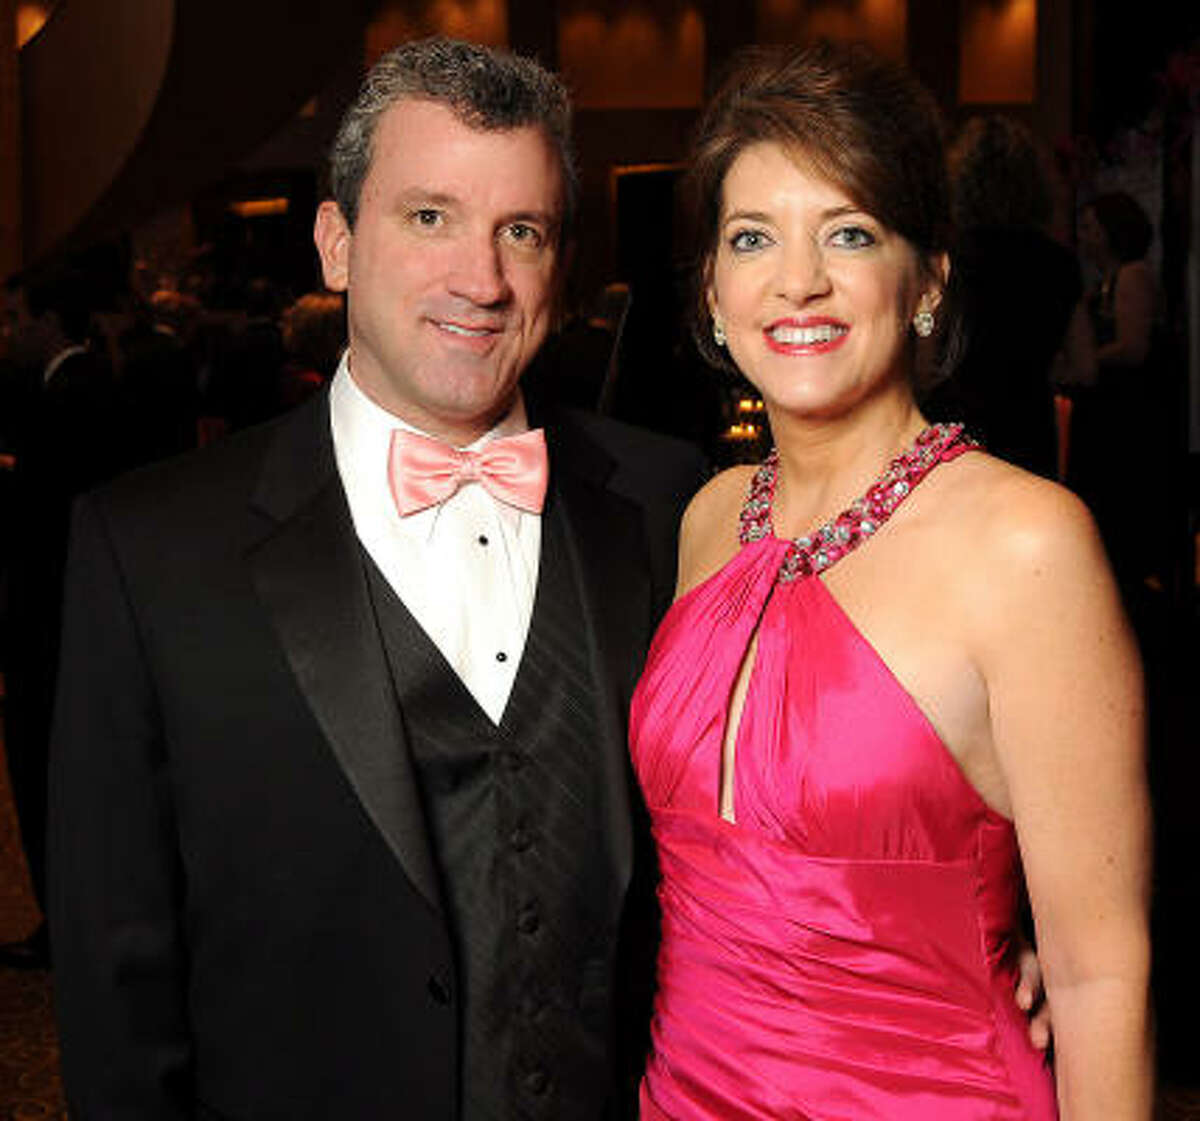 Bill and Tammy Grass at the 2010 Pink Tie Gala at the InterContinental Hotel.